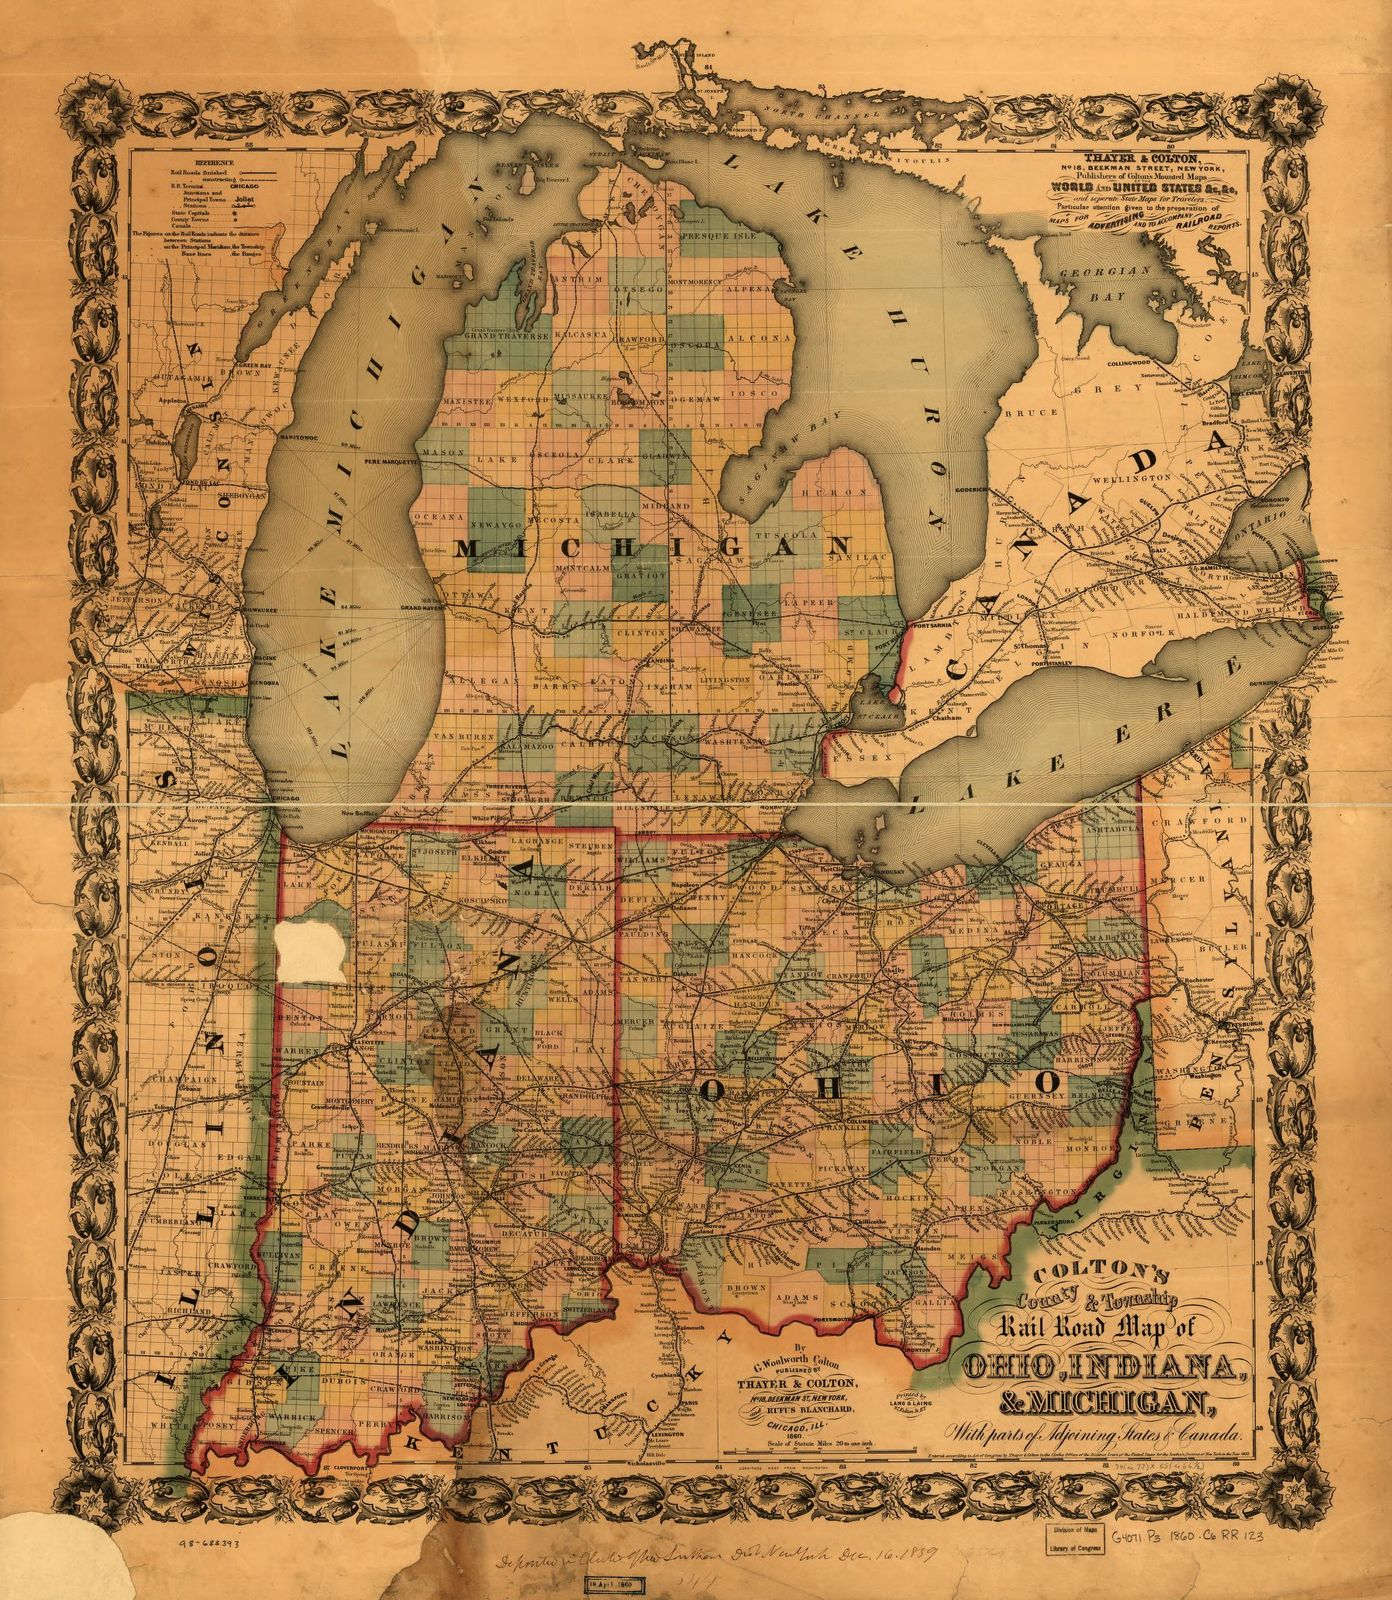 Colton's county & township rail road map of Ohio, Indiana, & Michigan, with parts of adjoining states & Canada; printed by Lang & Laing, 1859.